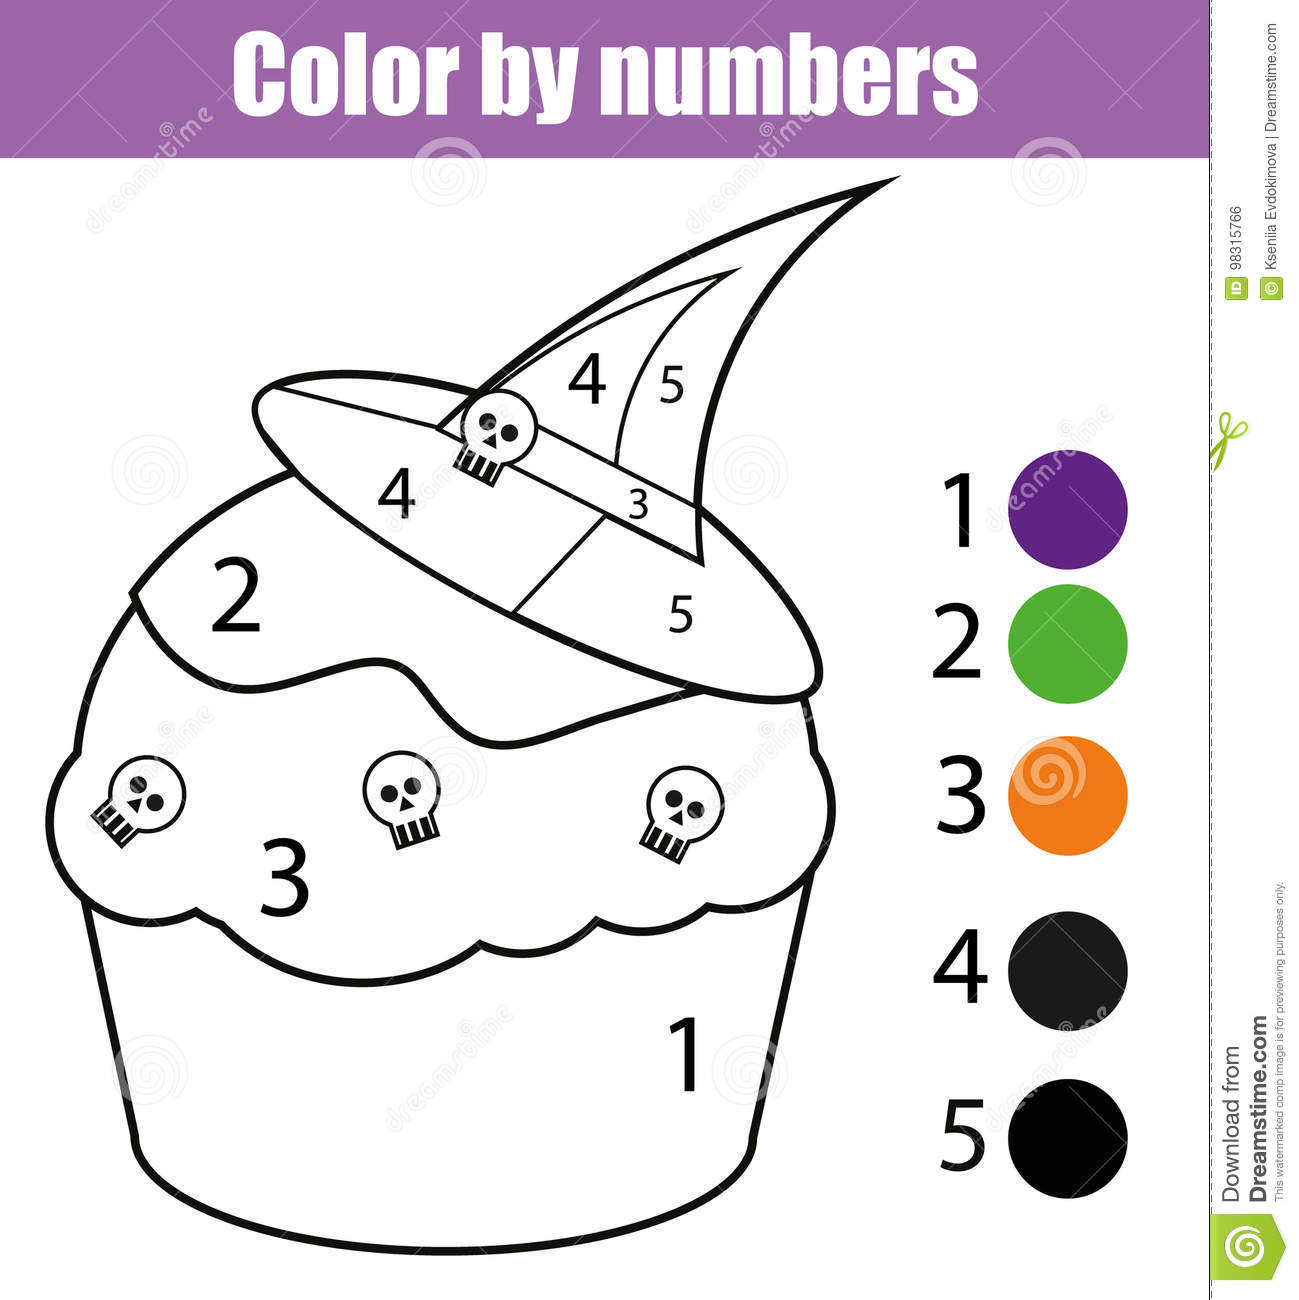 photograph about Color by Numbers Halloween Printable identified as Coloring Website page With Halloween Cupcake. Coloration By way of Quantities